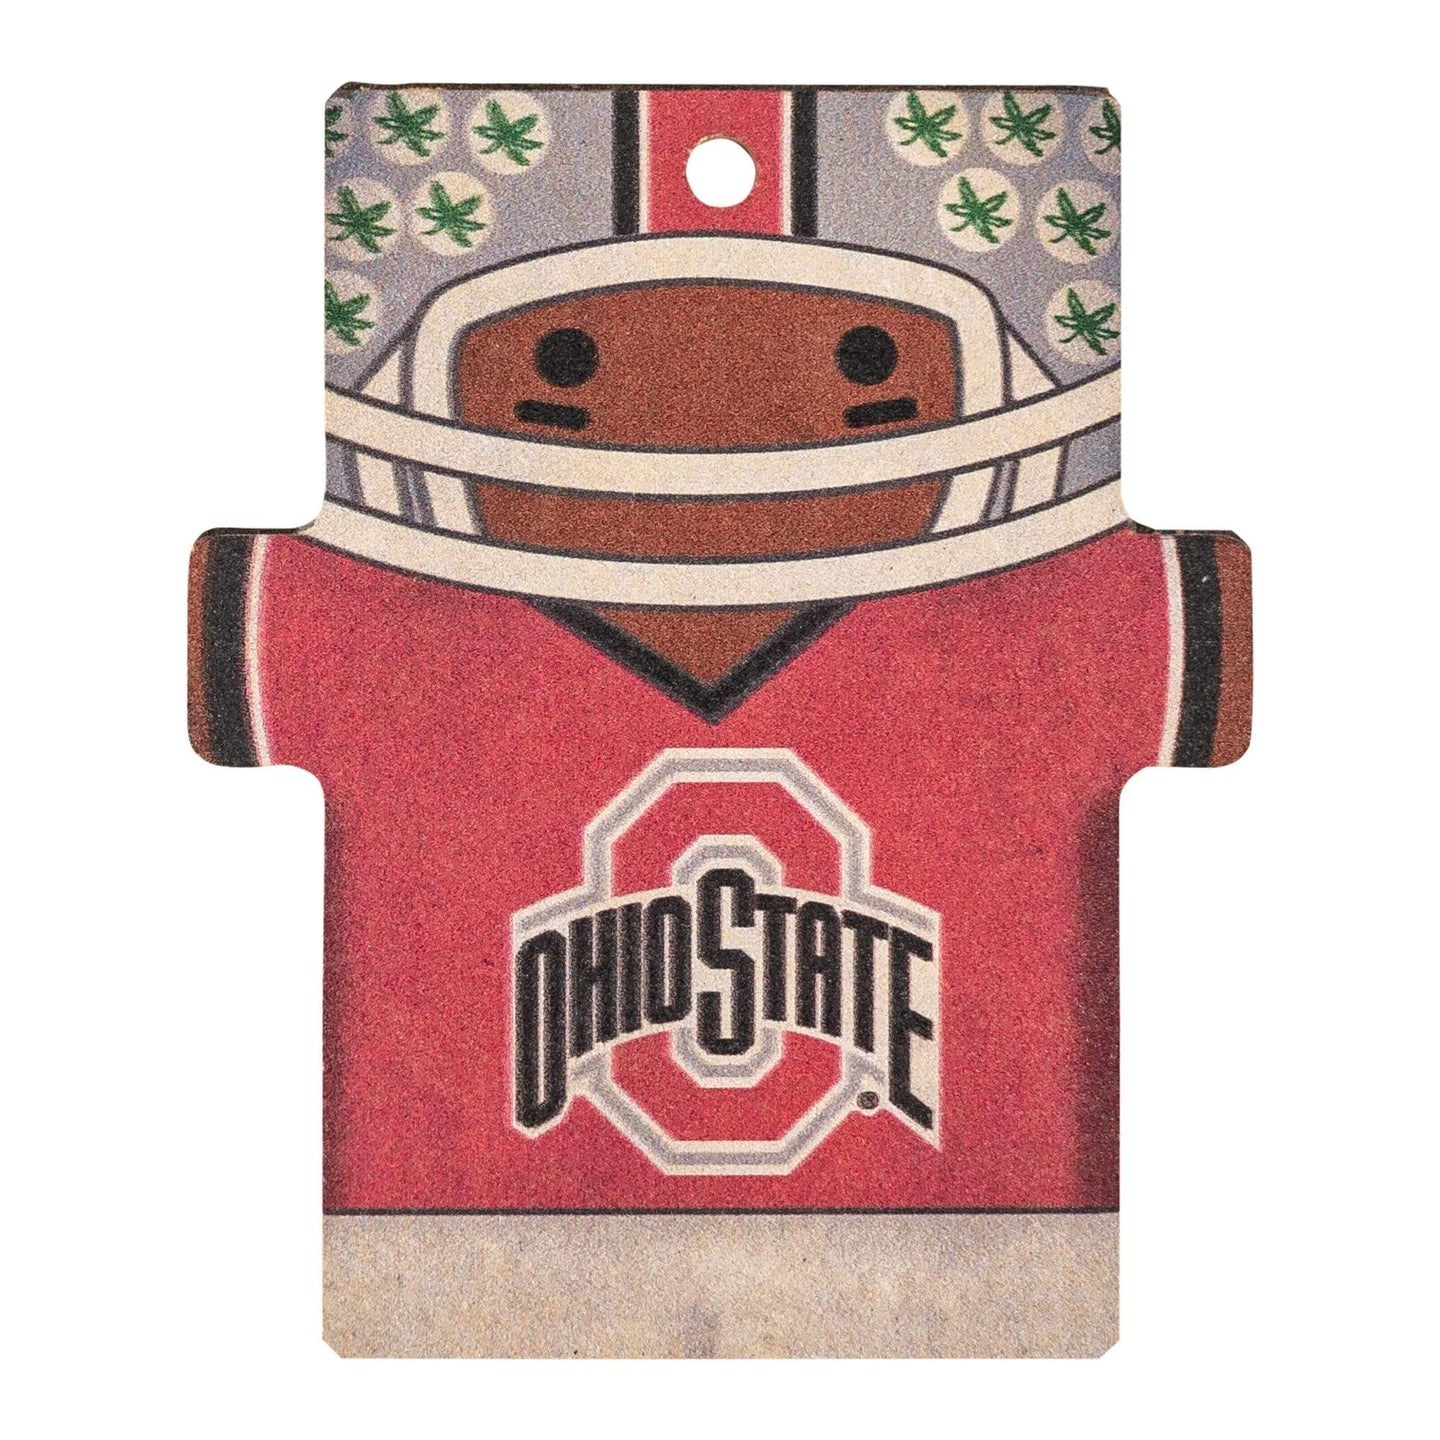 Ohio State Football Player Ornament